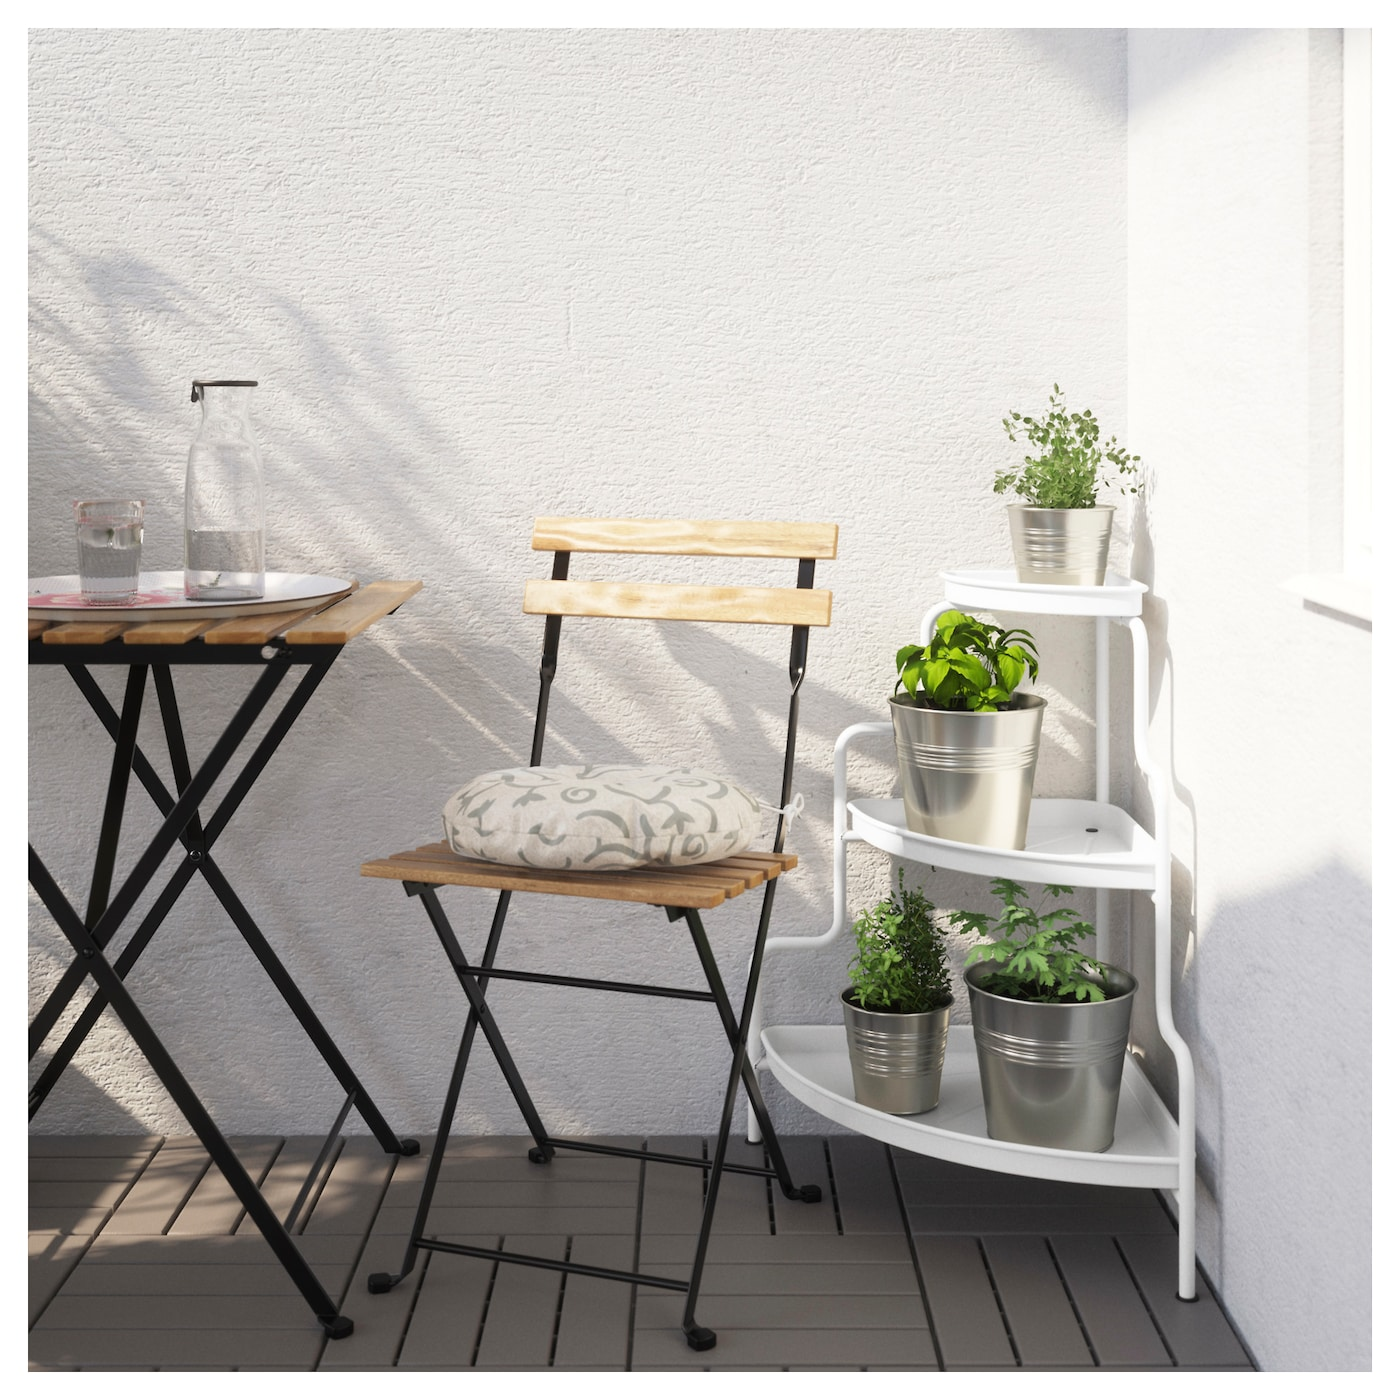 ikea plant stand socker plant stand in outdoor white 71 cm ikea 11799